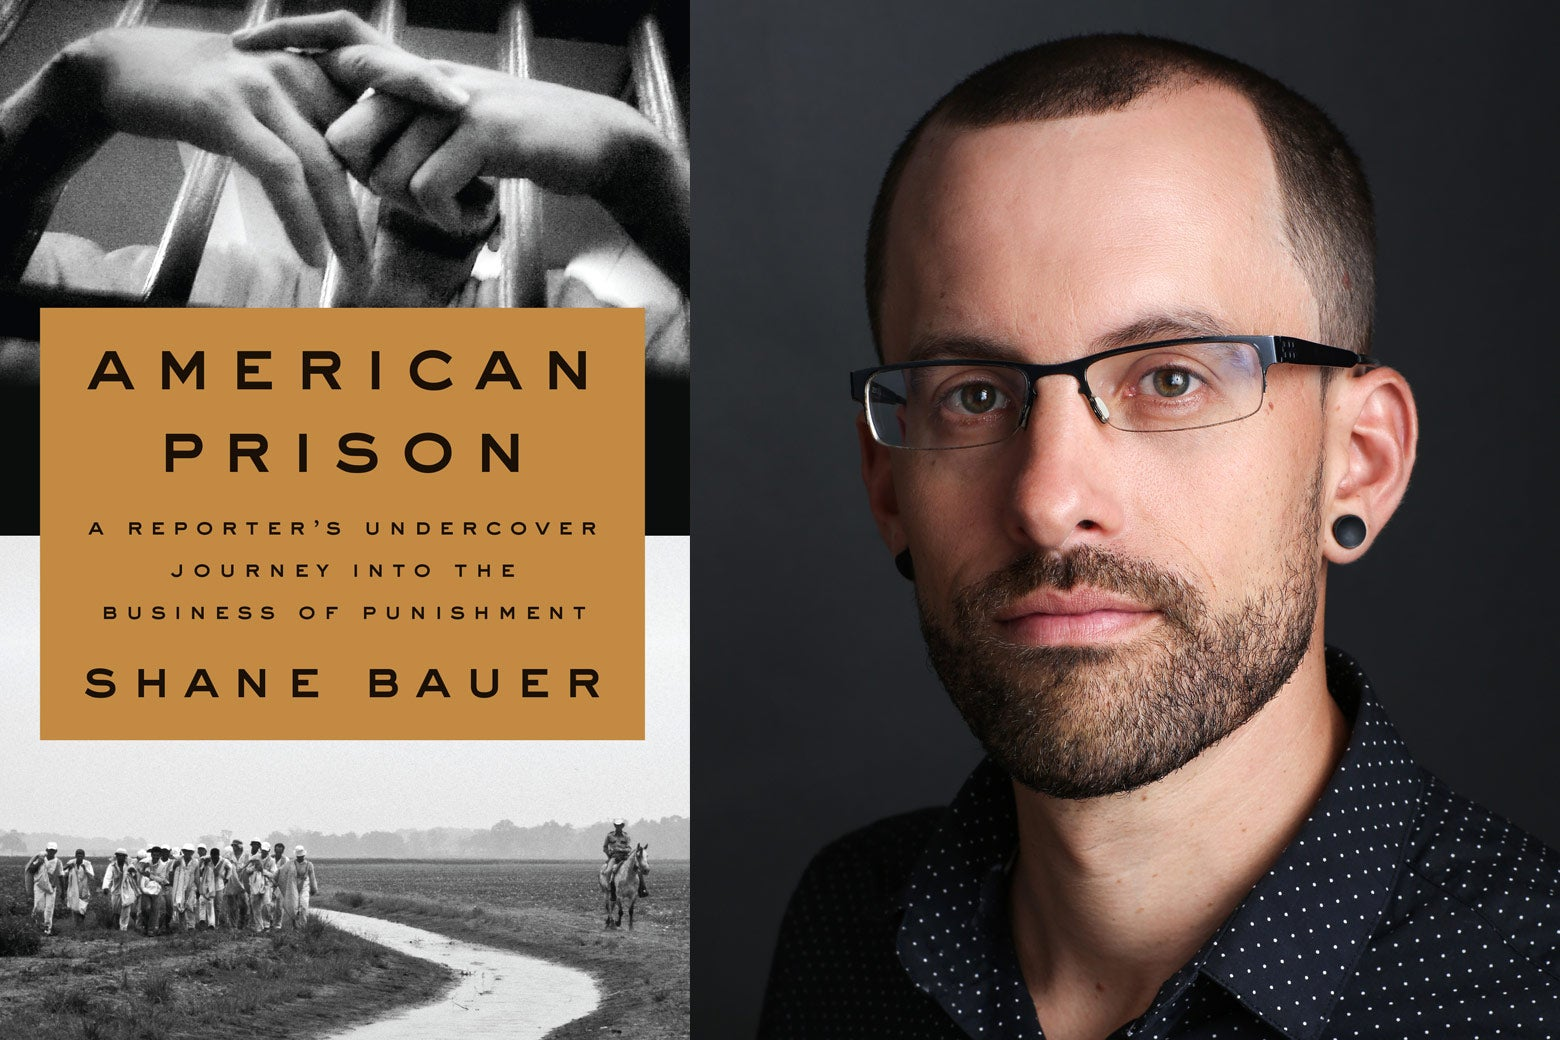 Book cover of American Prison beside a photo of Shane Bauer.